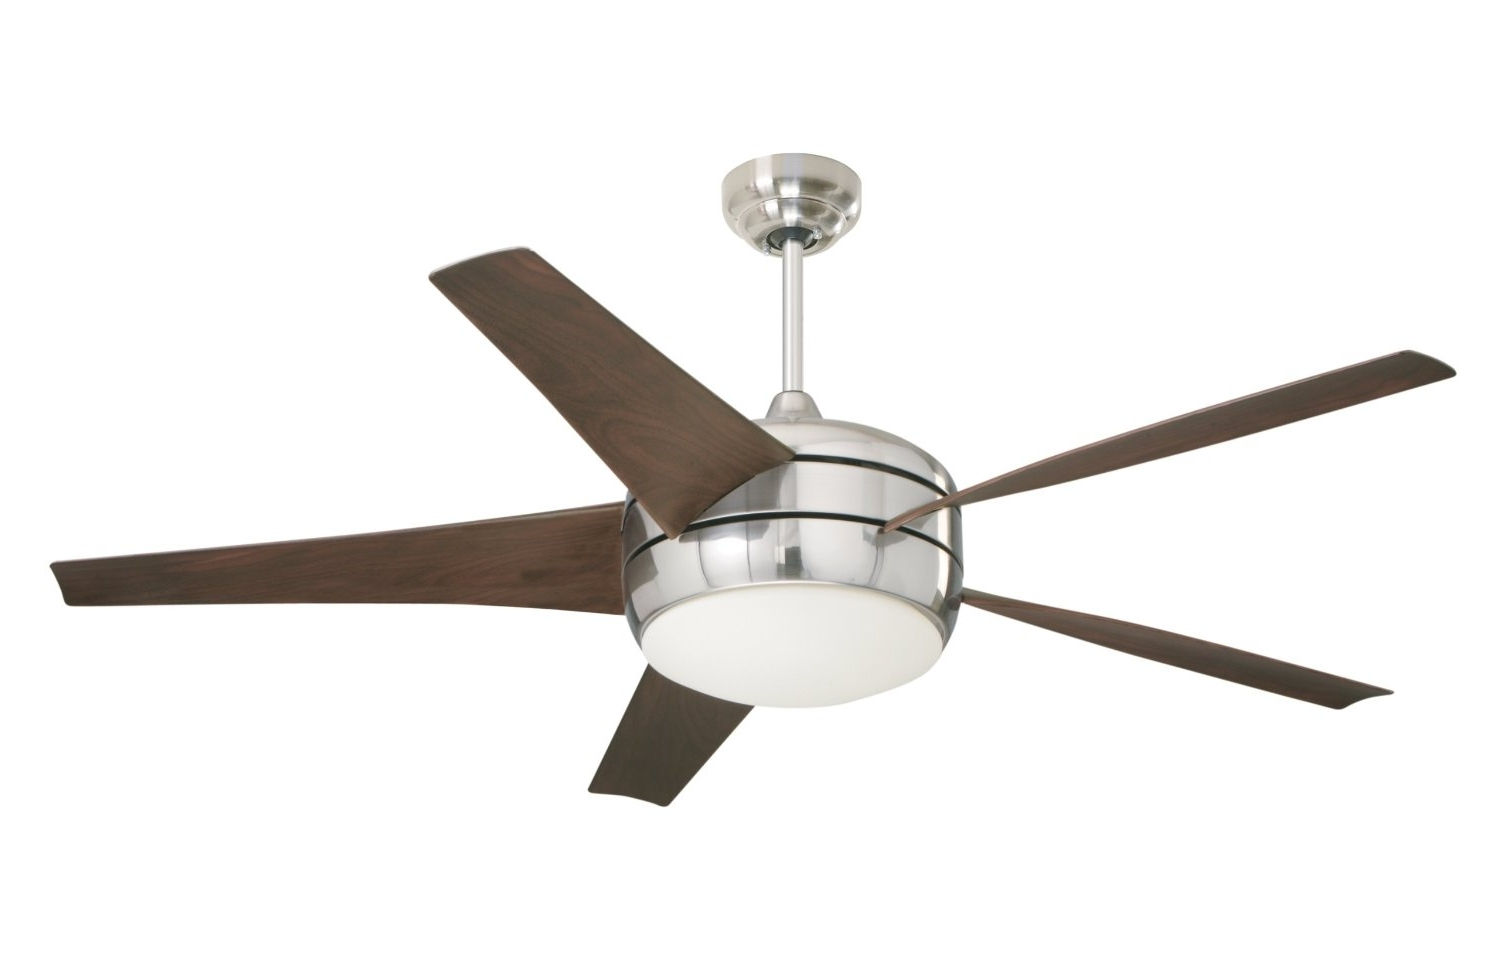 Best And Newest Best Ceiling Fans Reviews, Buying Guide And Comparison 2018 Pertaining To Efficient Outdoor Ceiling Fans (View 3 of 20)